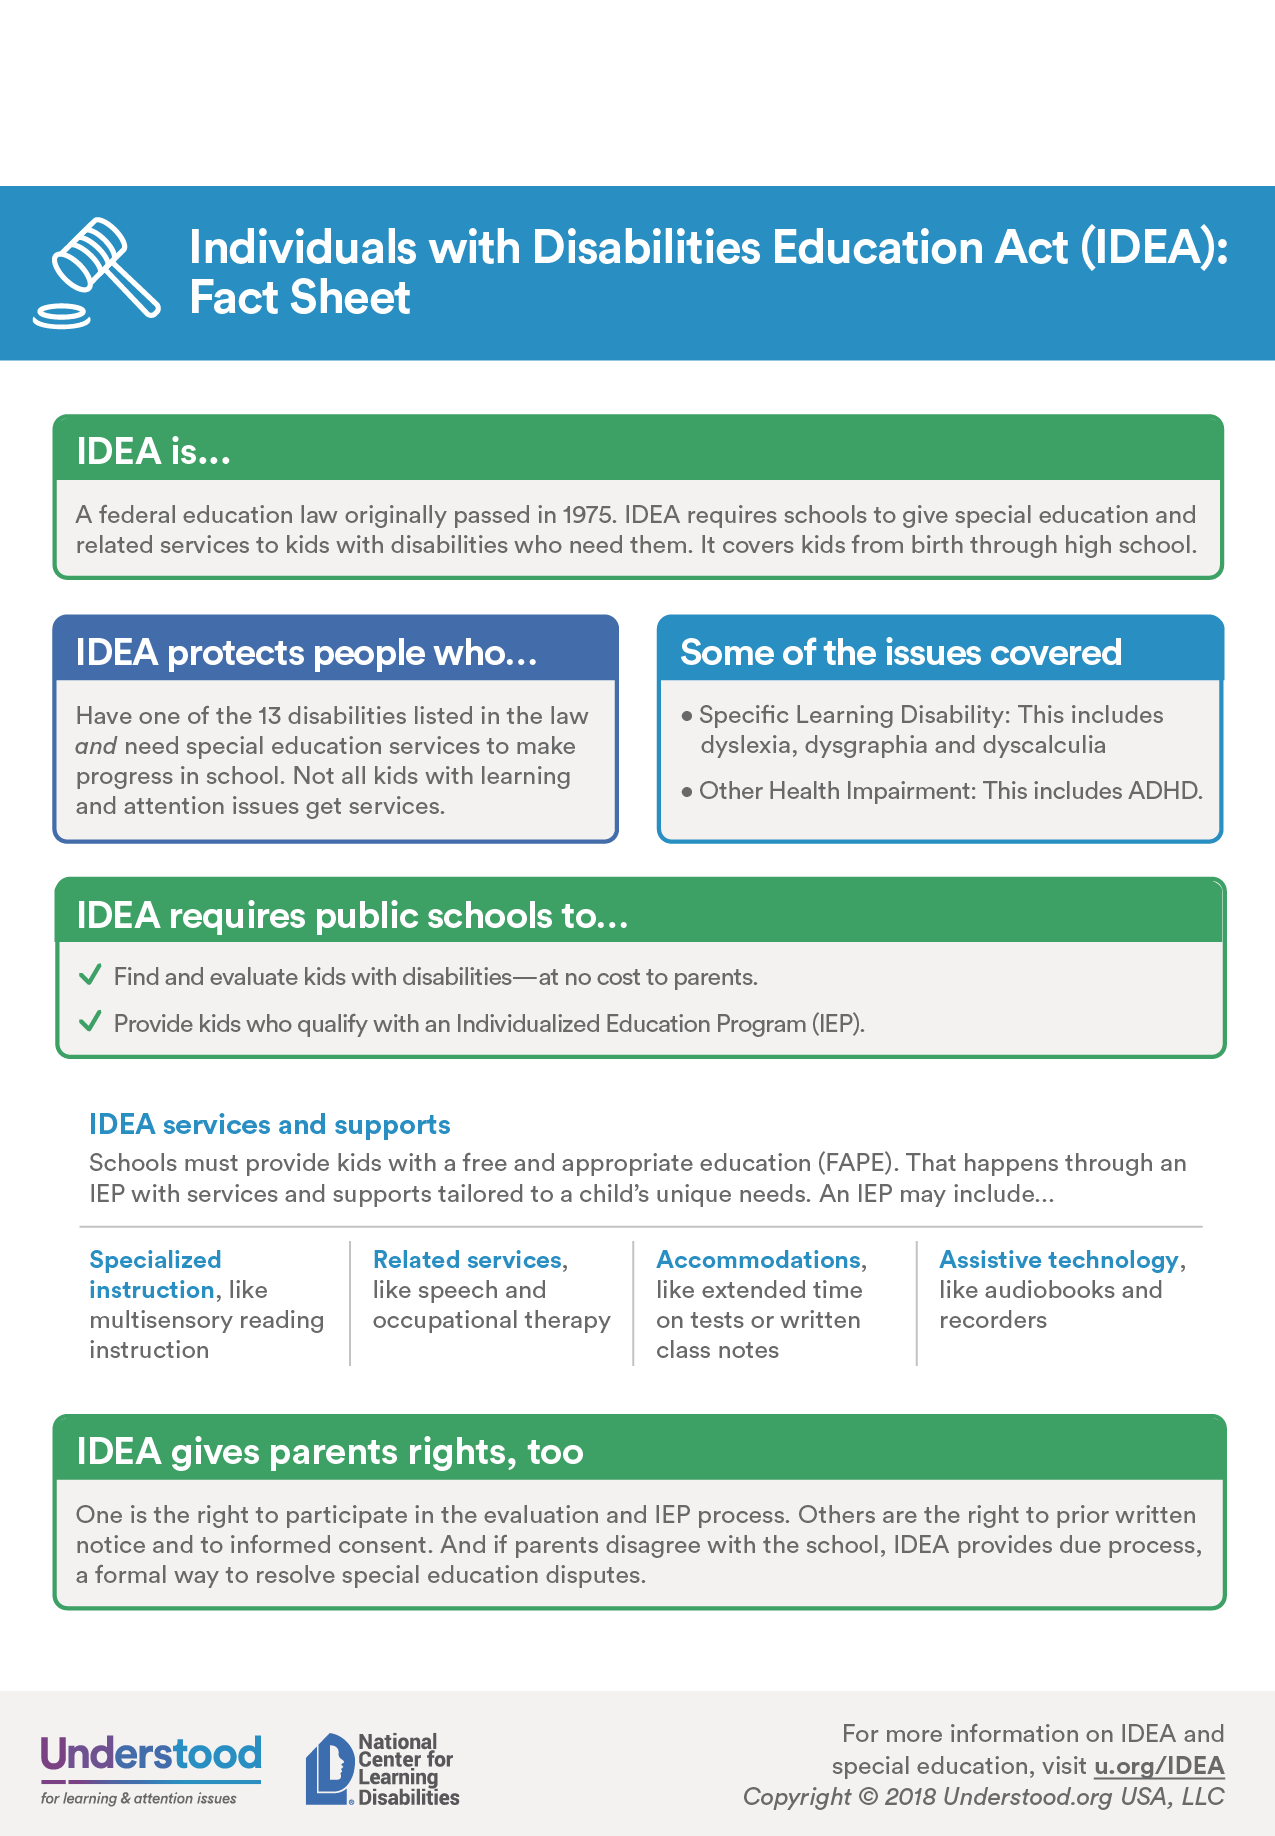 IDEA Fact Sheet